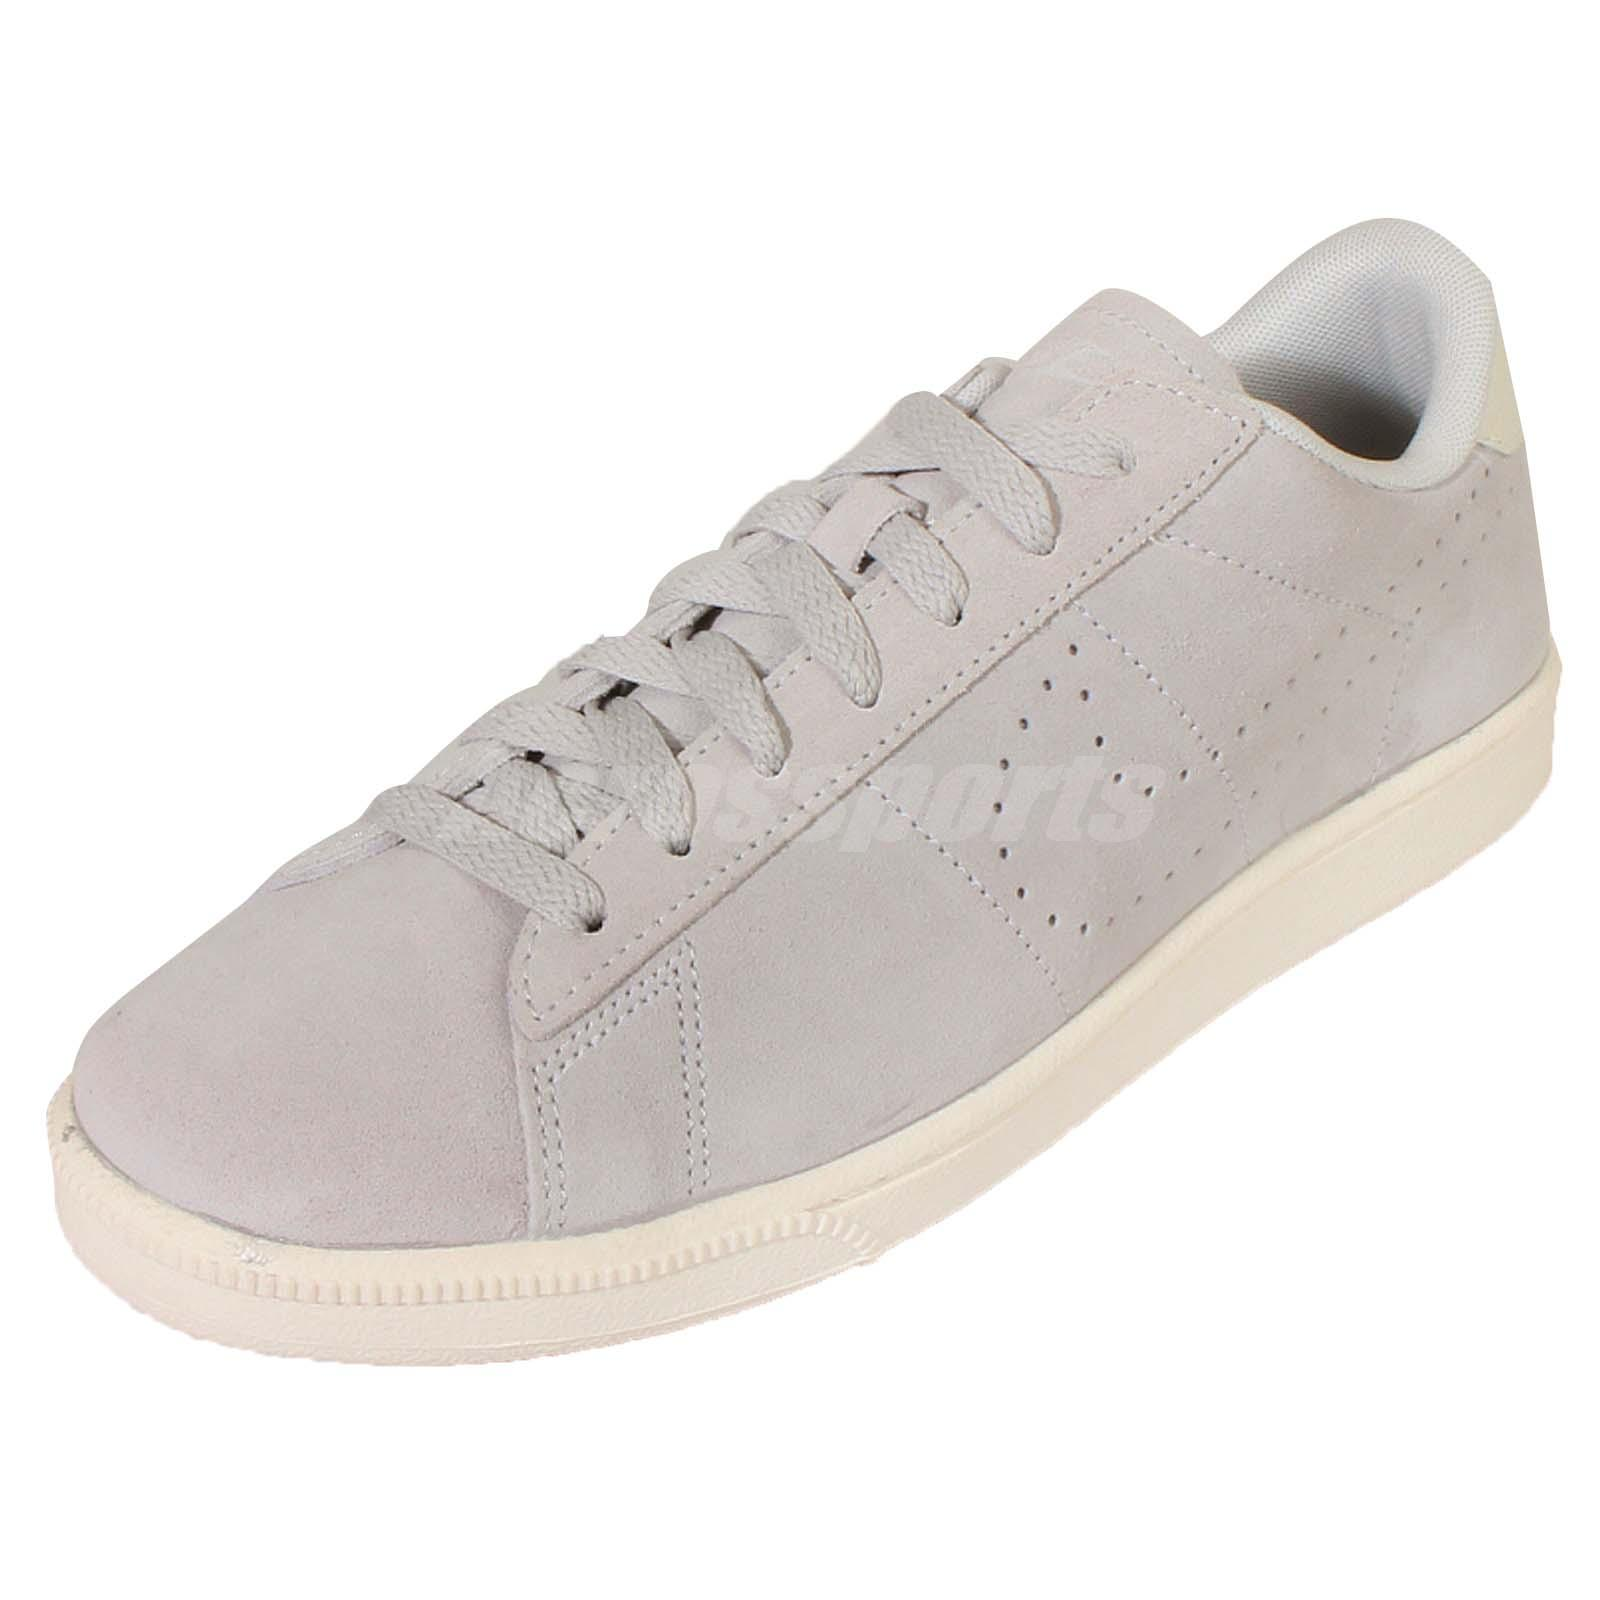 nike tennis classic cs suede grey ivory mens shoes